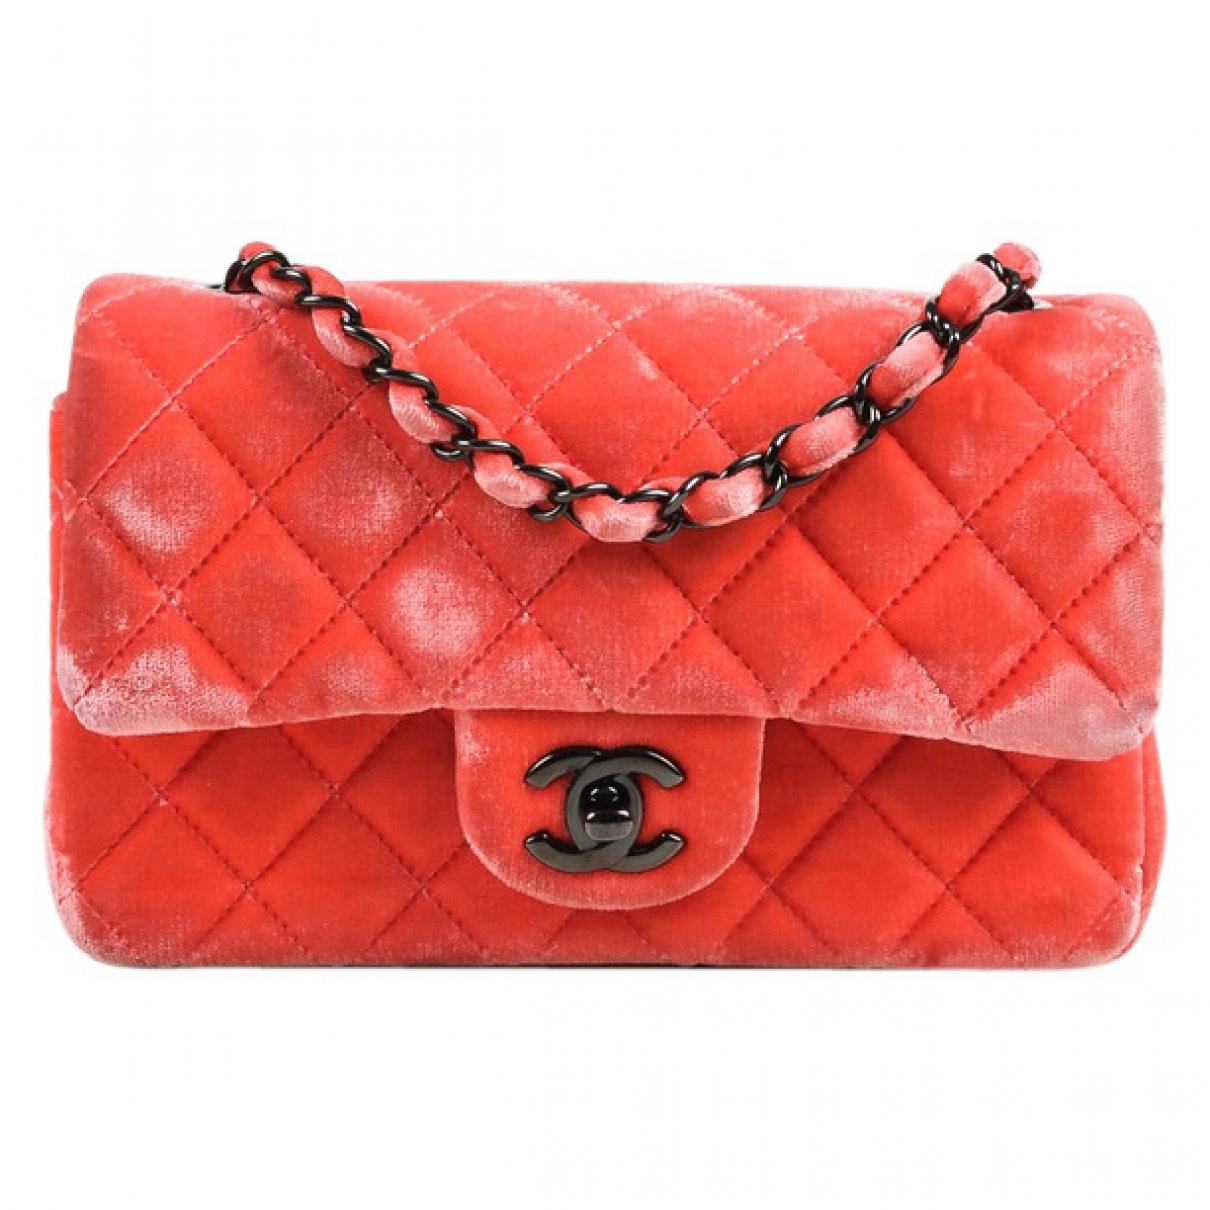 98332f62cf44a9 Lyst - Chanel Pre-owned Timeless Velvet Mini Bag in Pink